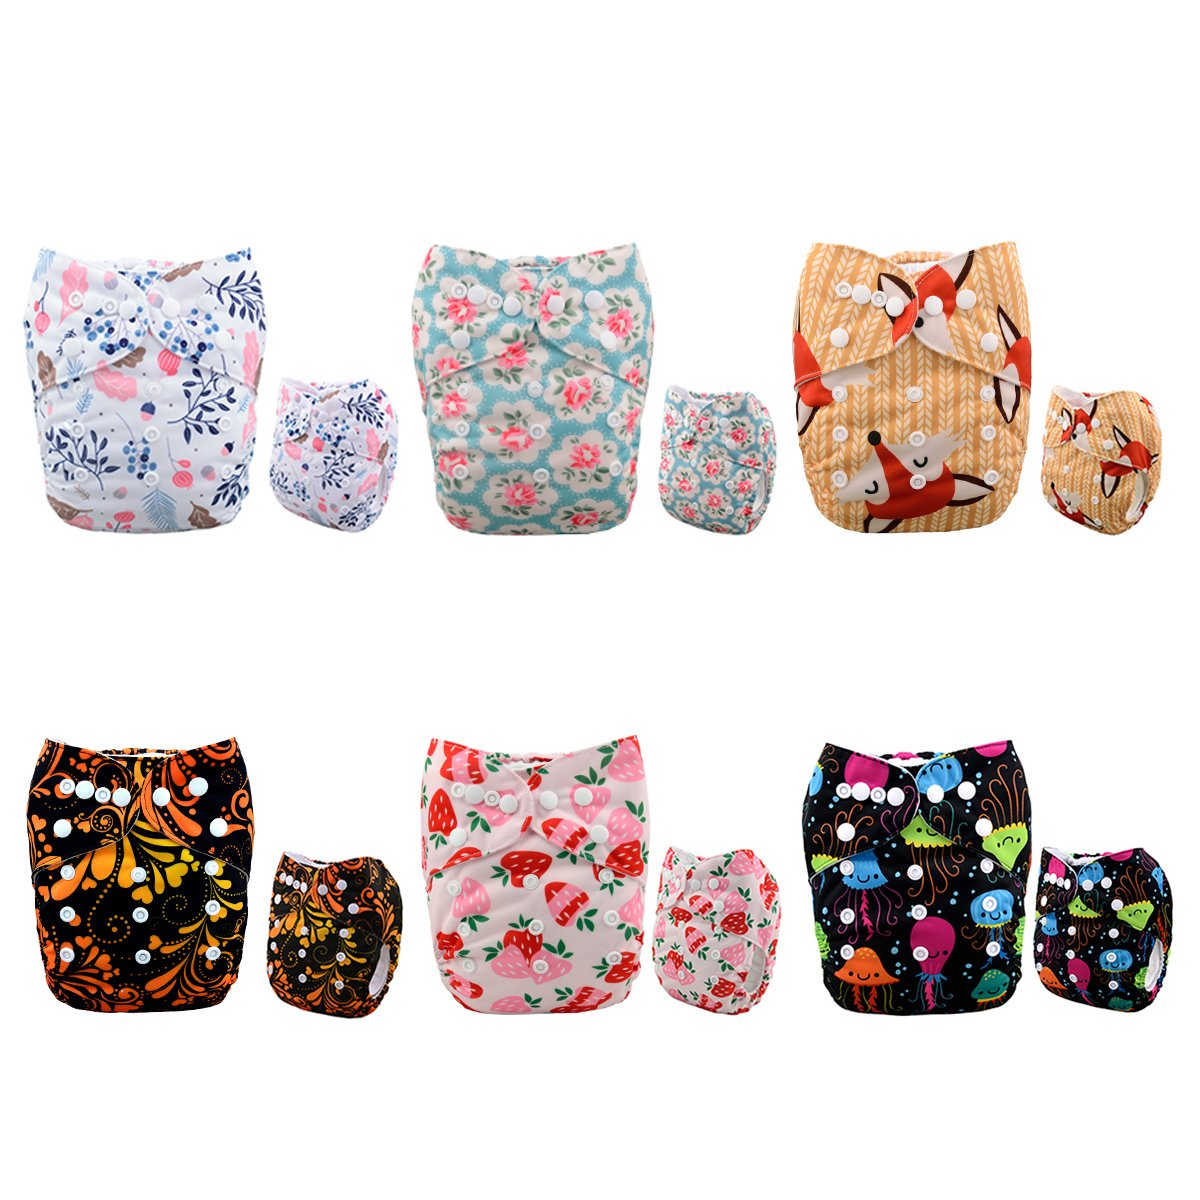 Alva Baby 6pcs Pack Fitted Pocket Cloth Diaper with 2 Inserts Each (Boy Color) 6DM12 Alvababy